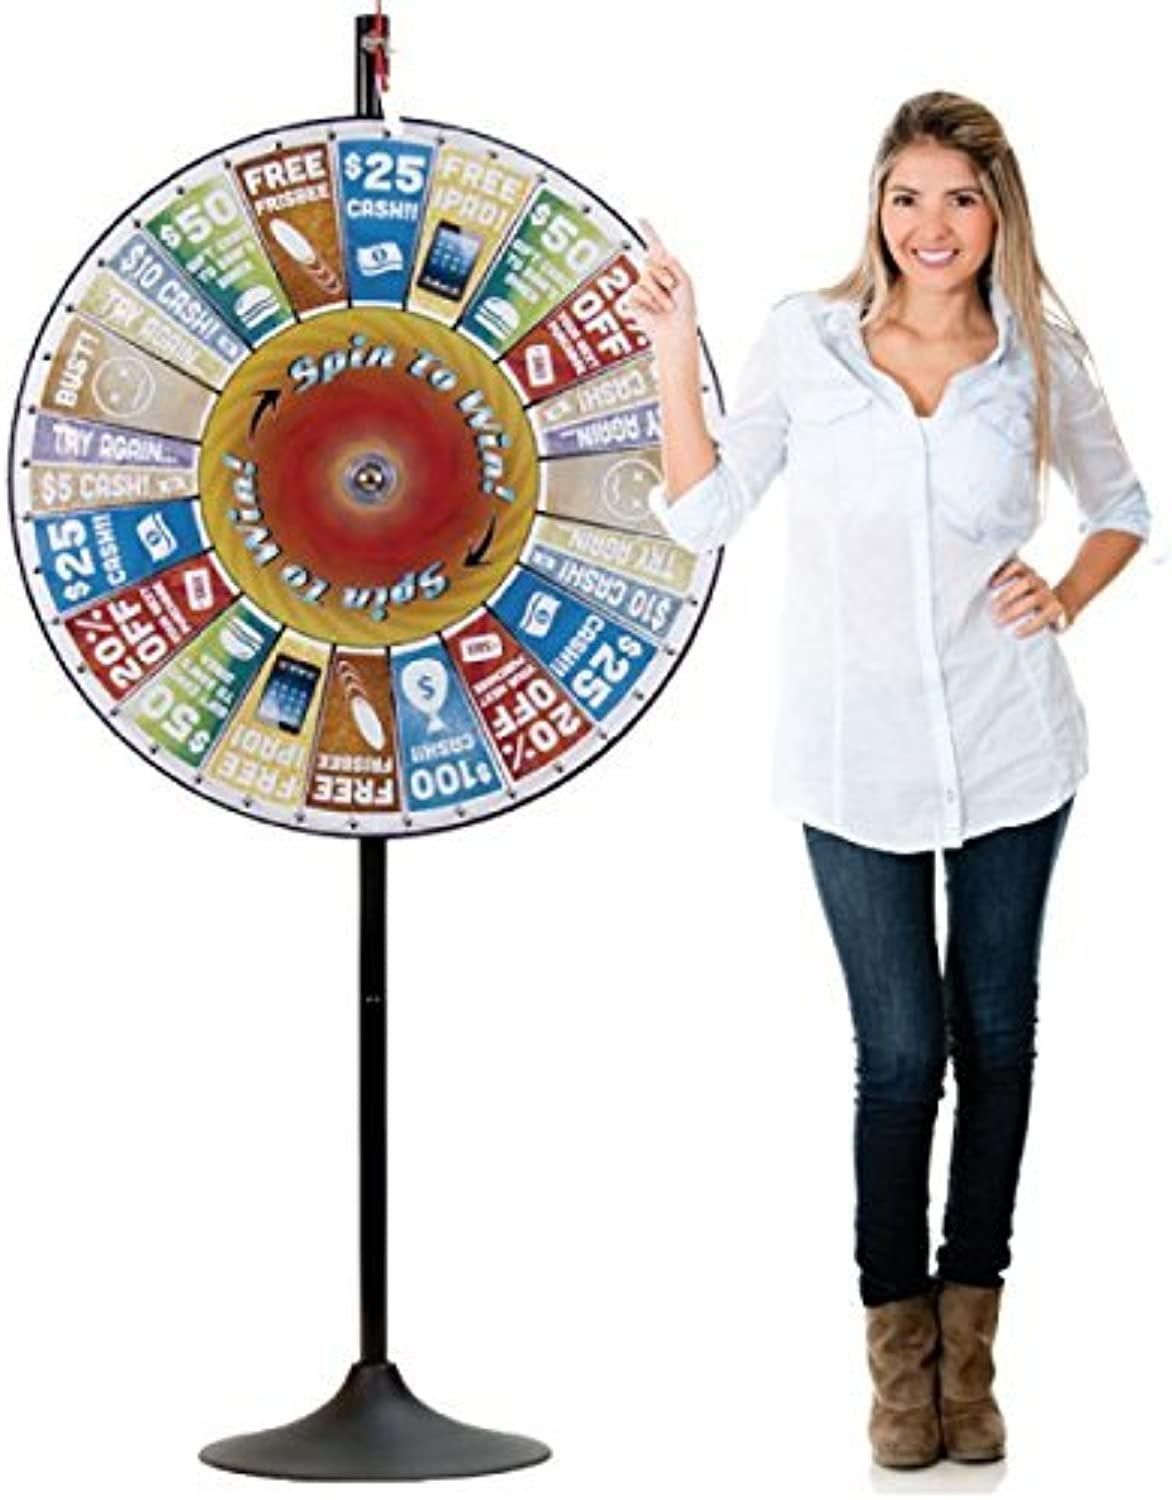 Spinning Prize Wheel  Large 36 inch Professional Grade Pocket Insert Prize Wheel with Bonus Extension Base